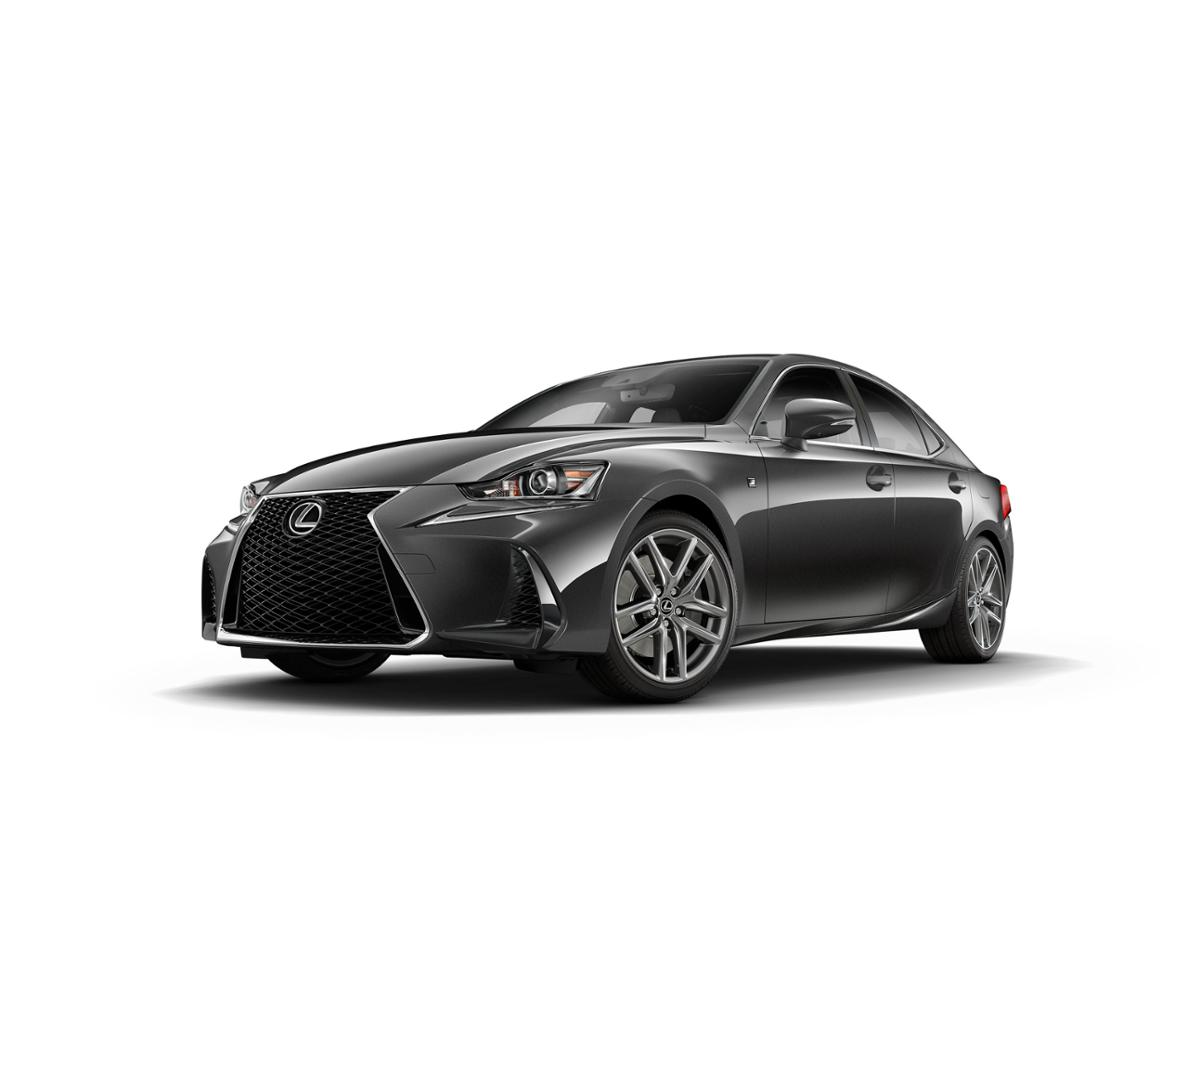 2017 Lexus IS 350 Vehicle Photo in Las Vegas, NV 89146